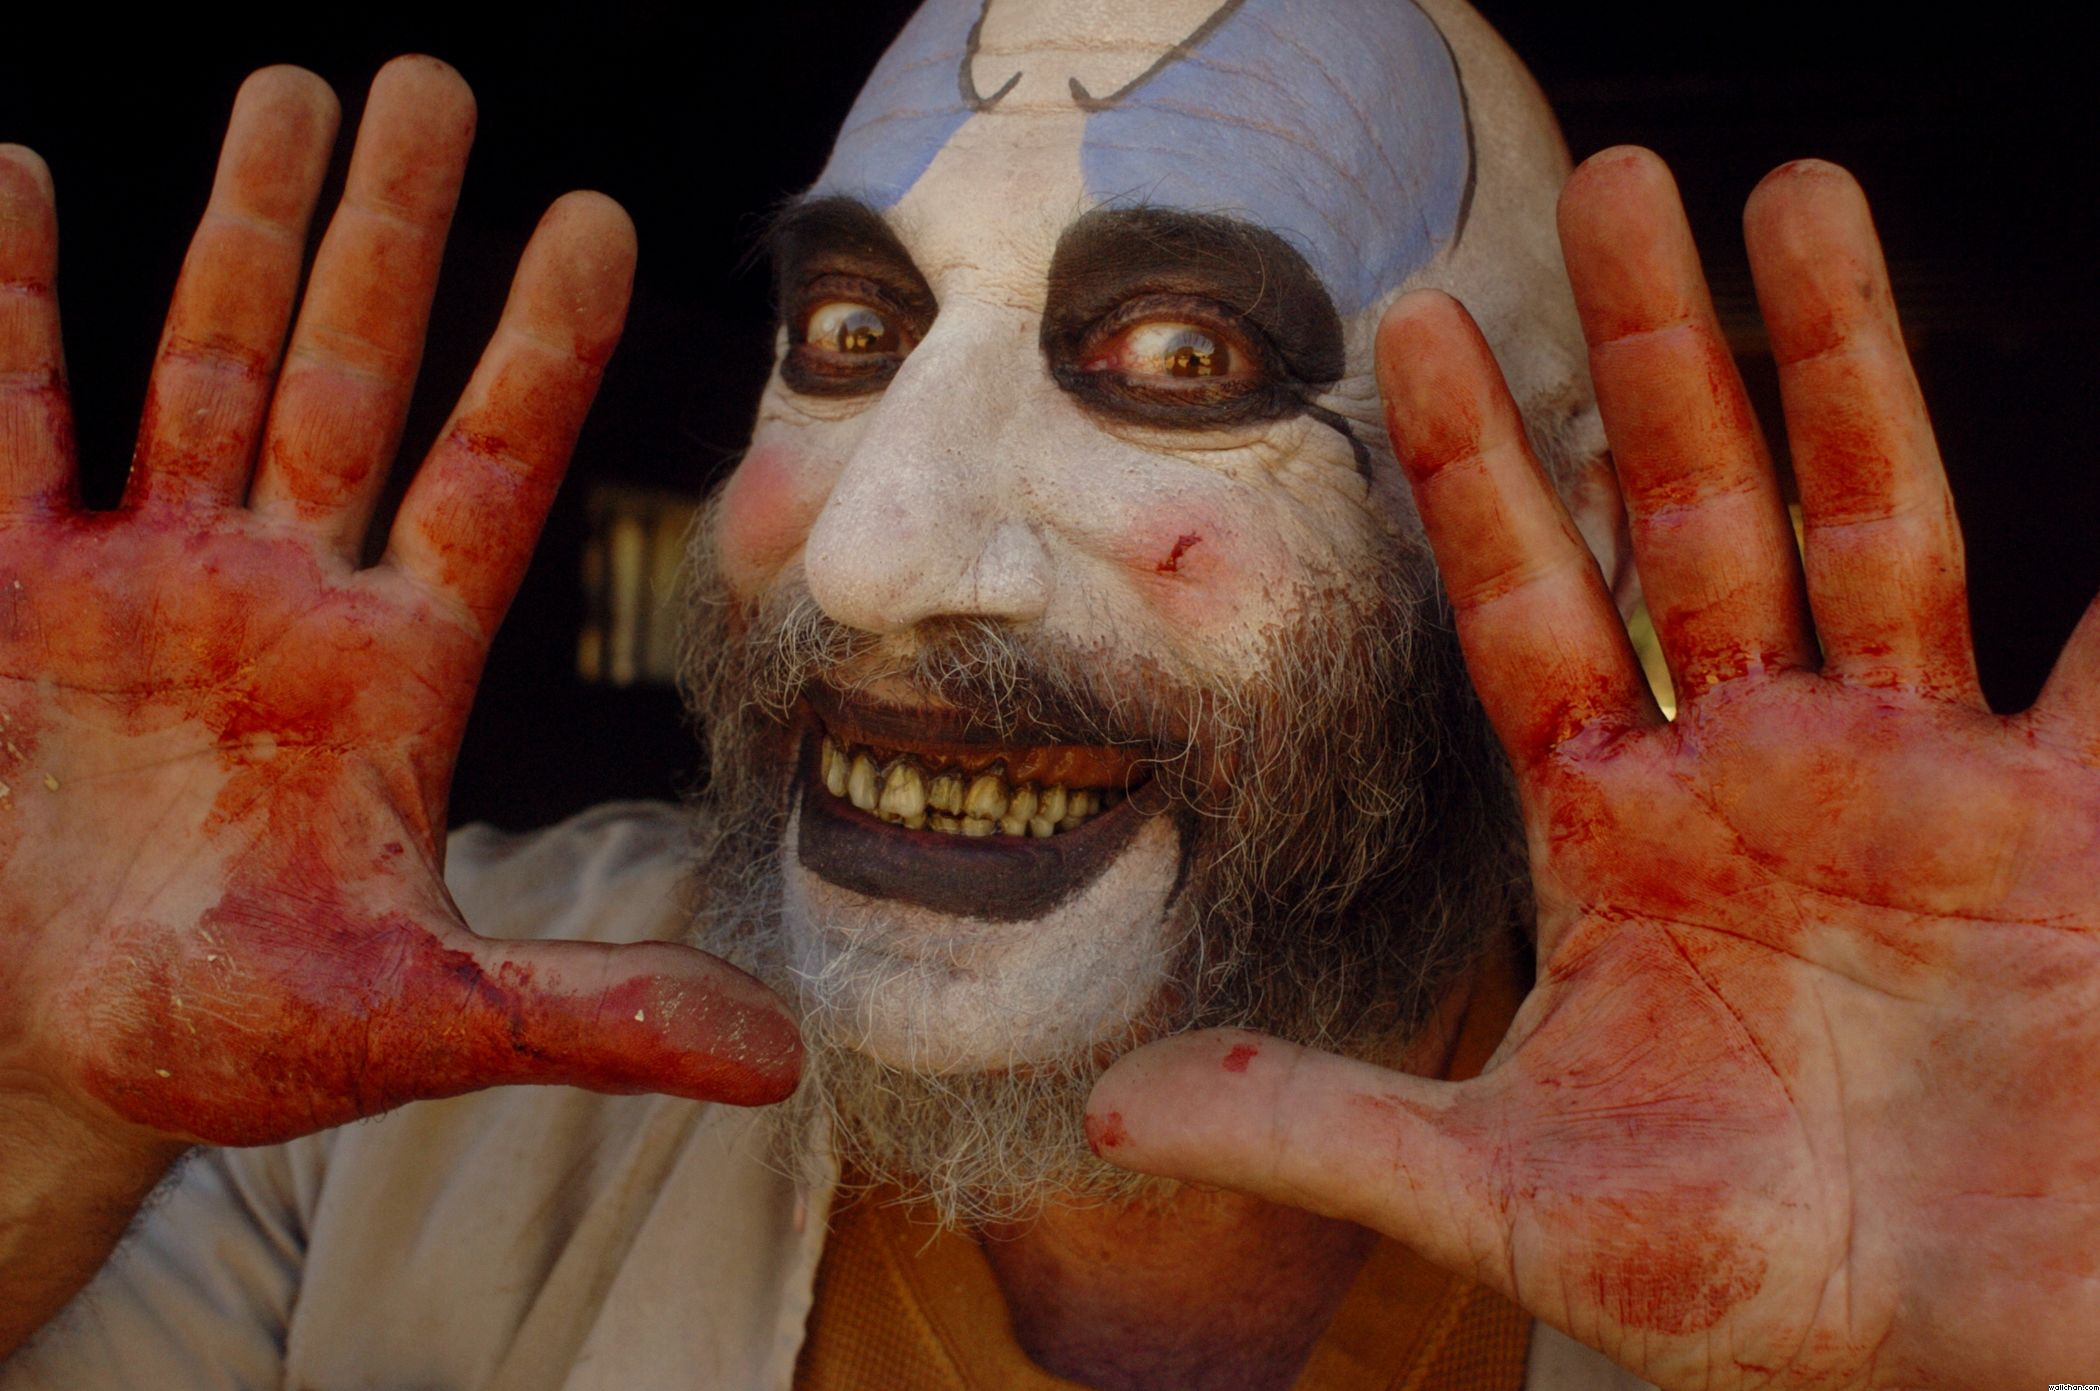 sidhaigcaptainspauldingbanner - Sid Haig Married a Couple at This Year's Mad Monster Party Dressed as Captain Spaulding